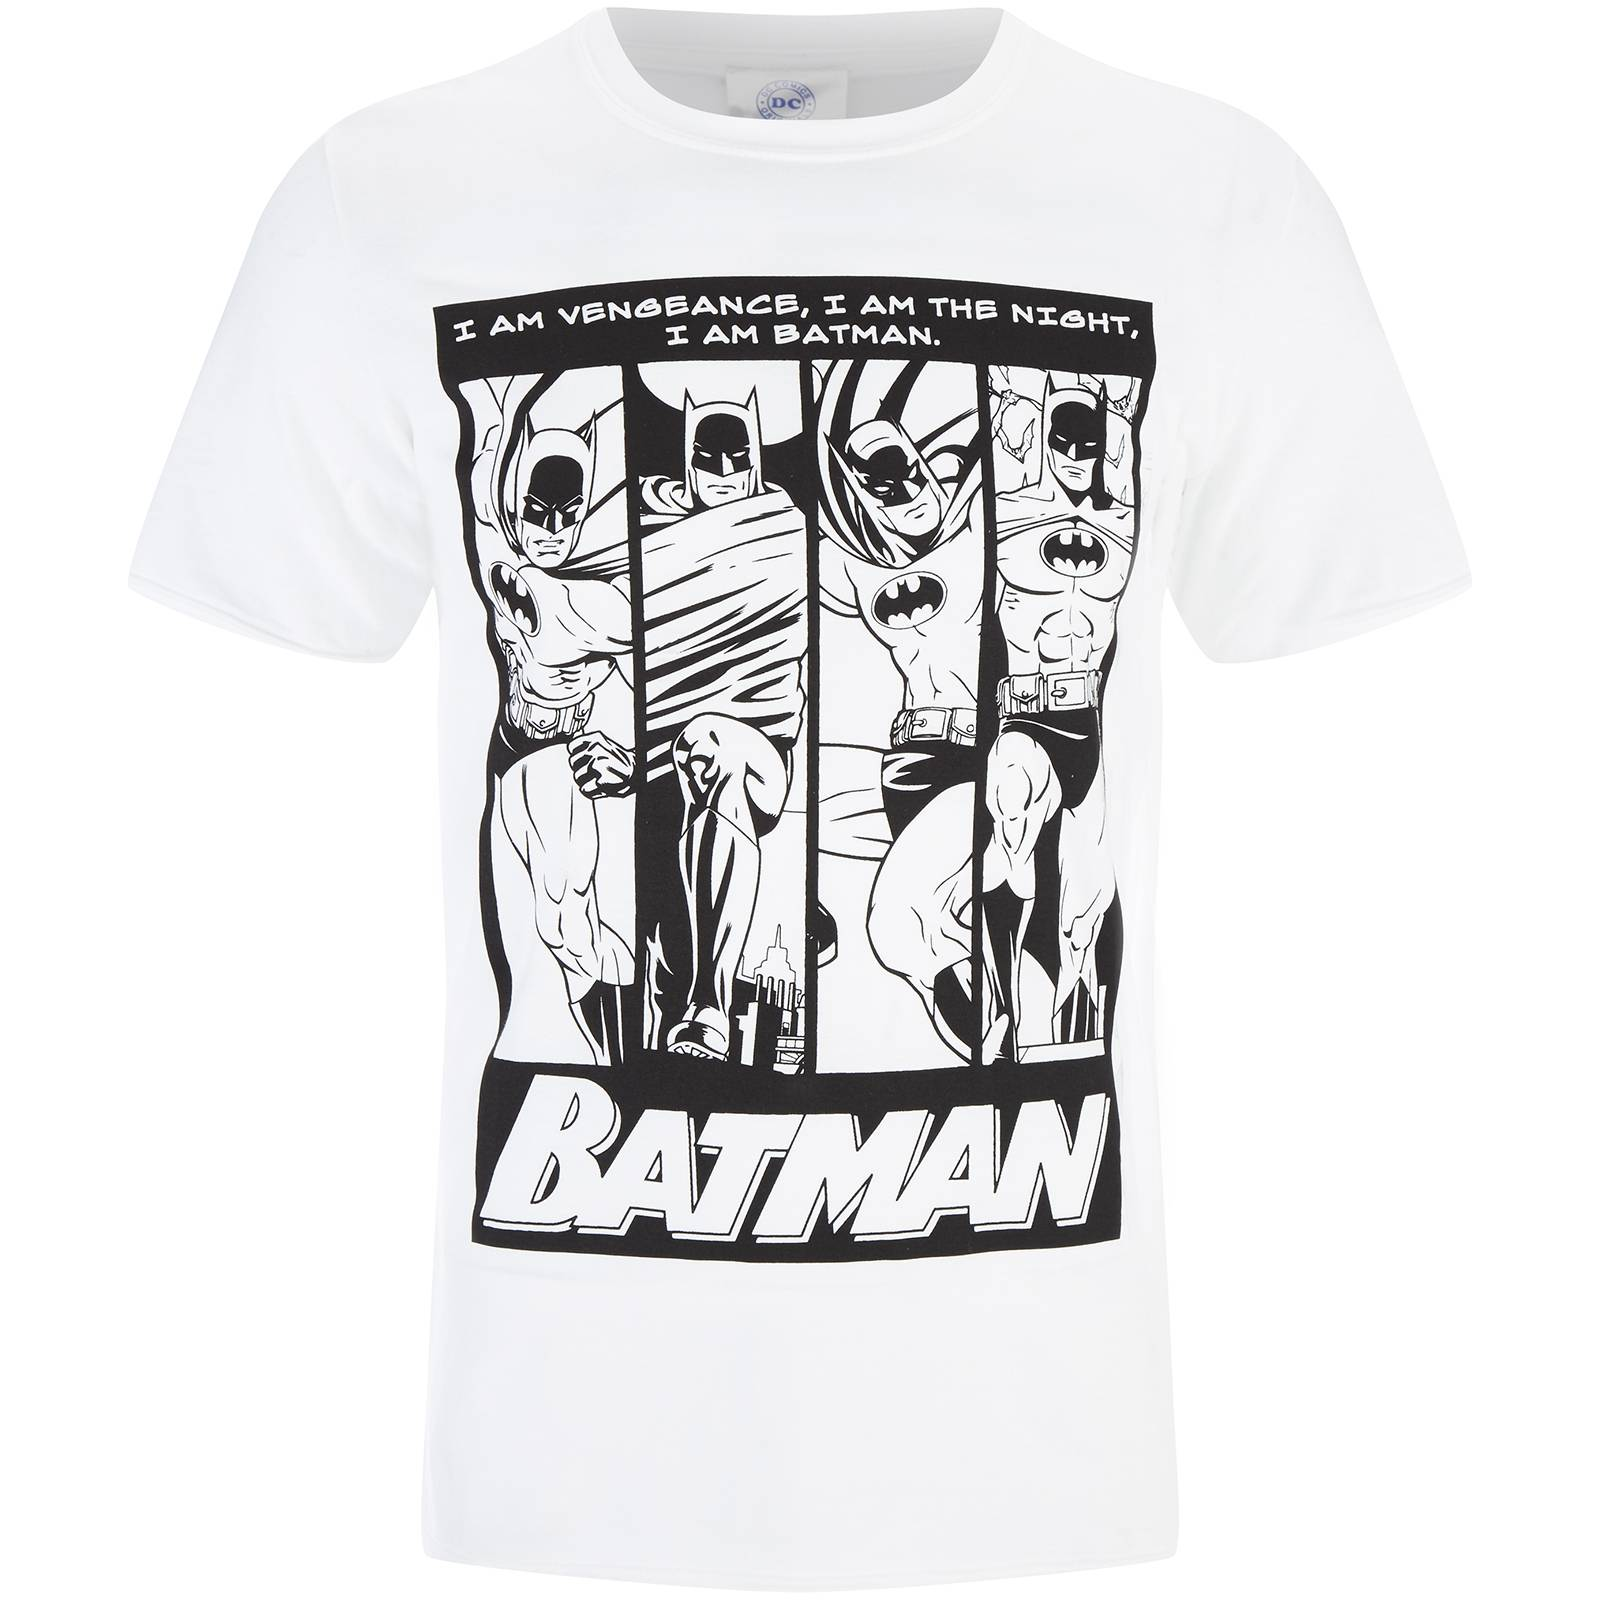 Geek Clothing DC Comics Men's Batman I am Batman T-Shirt - White - S - White